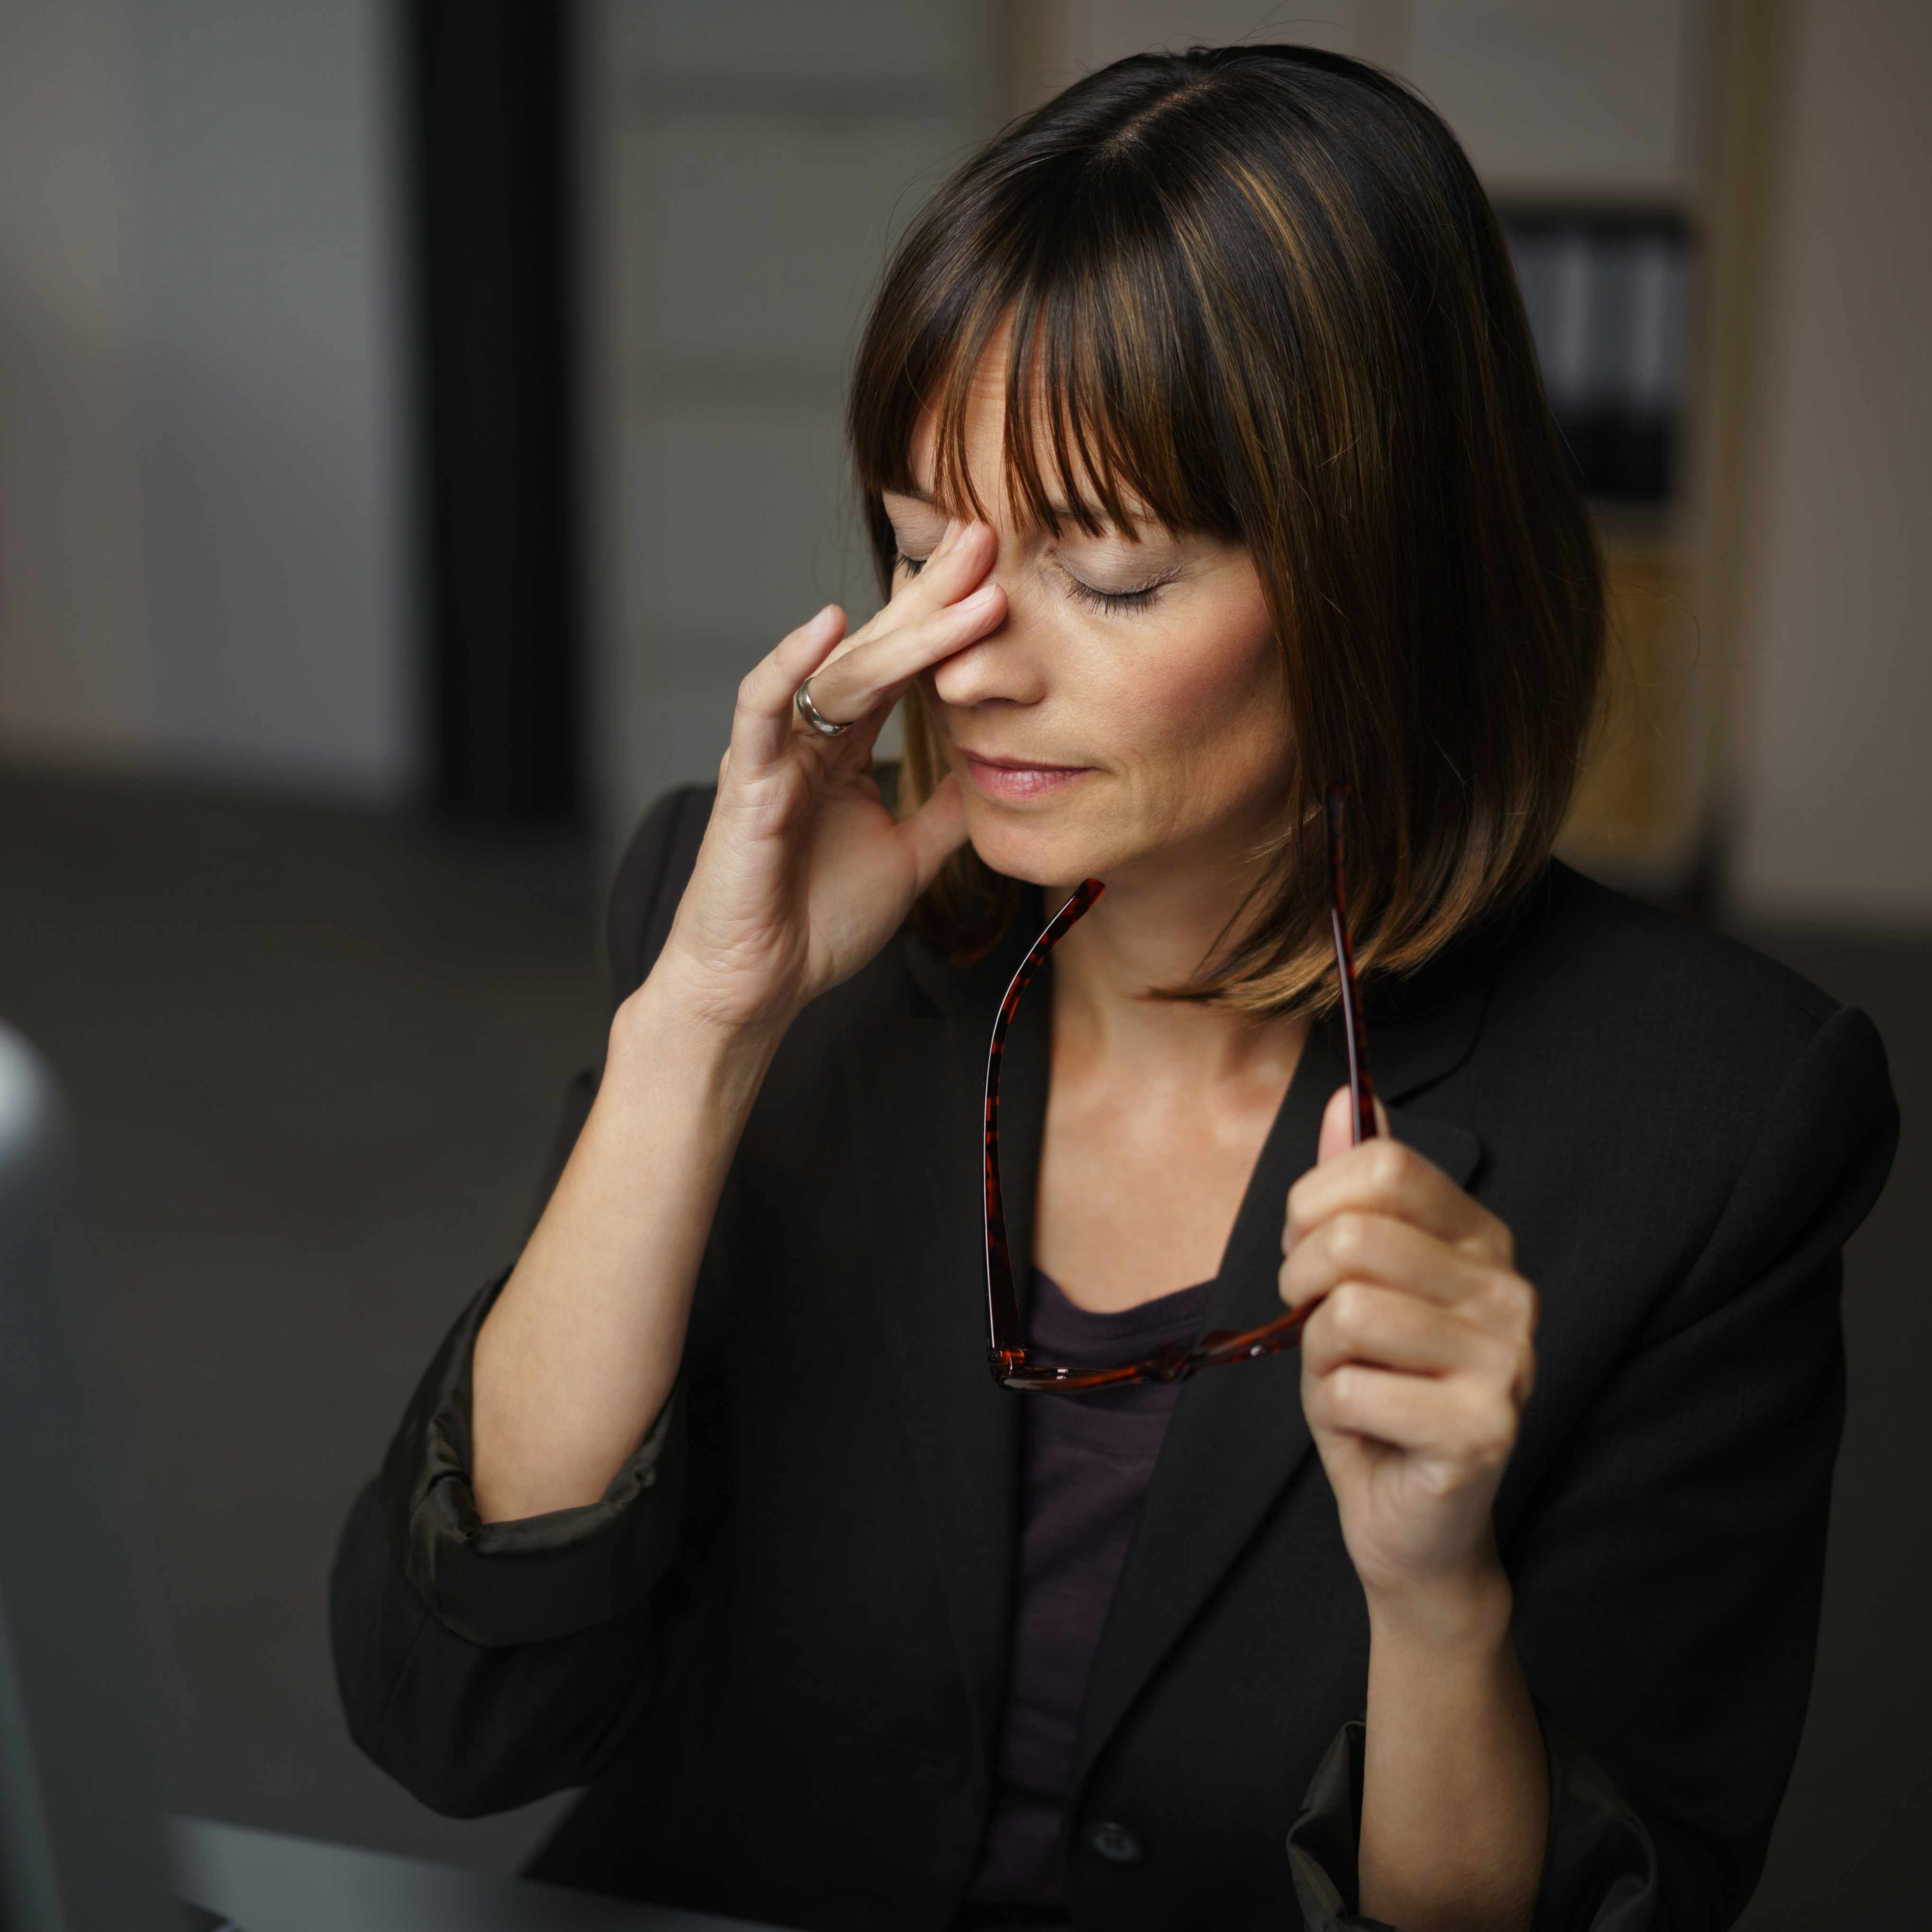 a young woman sitting at a computer in an office looking tired and touching her face like she has a headache